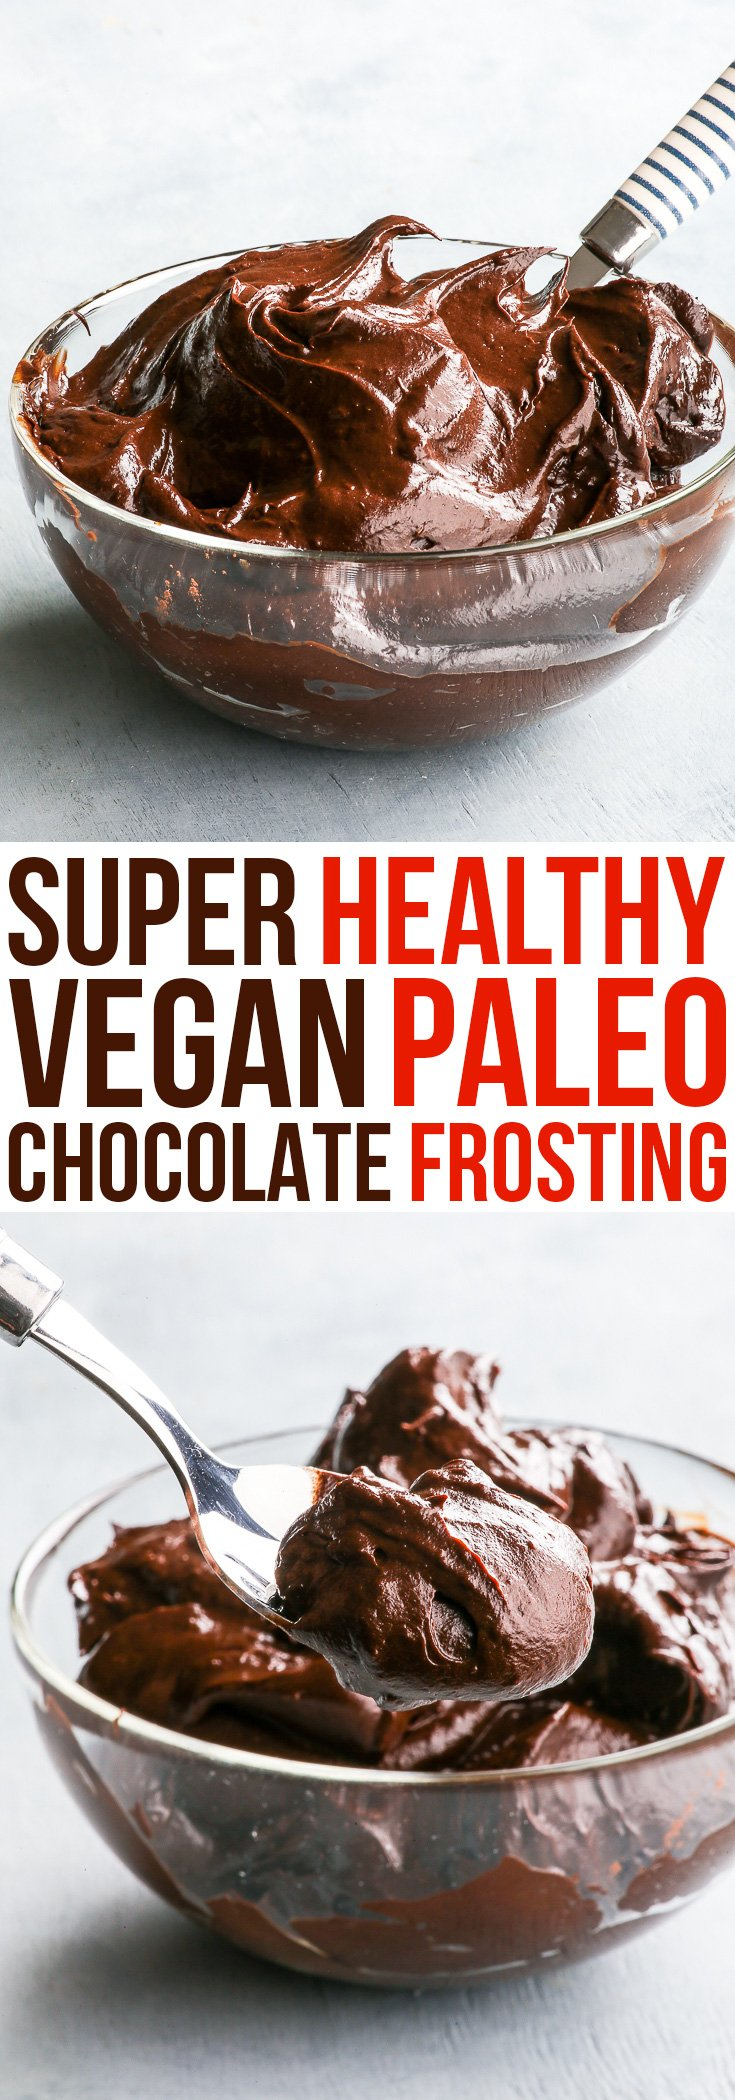 Super Healthy 3-Ingredient Vegan & Paleo Chocolate Frosting {gluten, dairy, egg, nut, soy & refined sugar free, vegan & paleo} - This healthy 3-ingredient paleo & vegan chocolate frosting is perfect for when you get hit with that chocolate craving, but still want something healthy and wholesome. Super easy and quick to make, this healthy chocolate ganache is perfect for frosting cakes, brownies or, you know… a spoon.